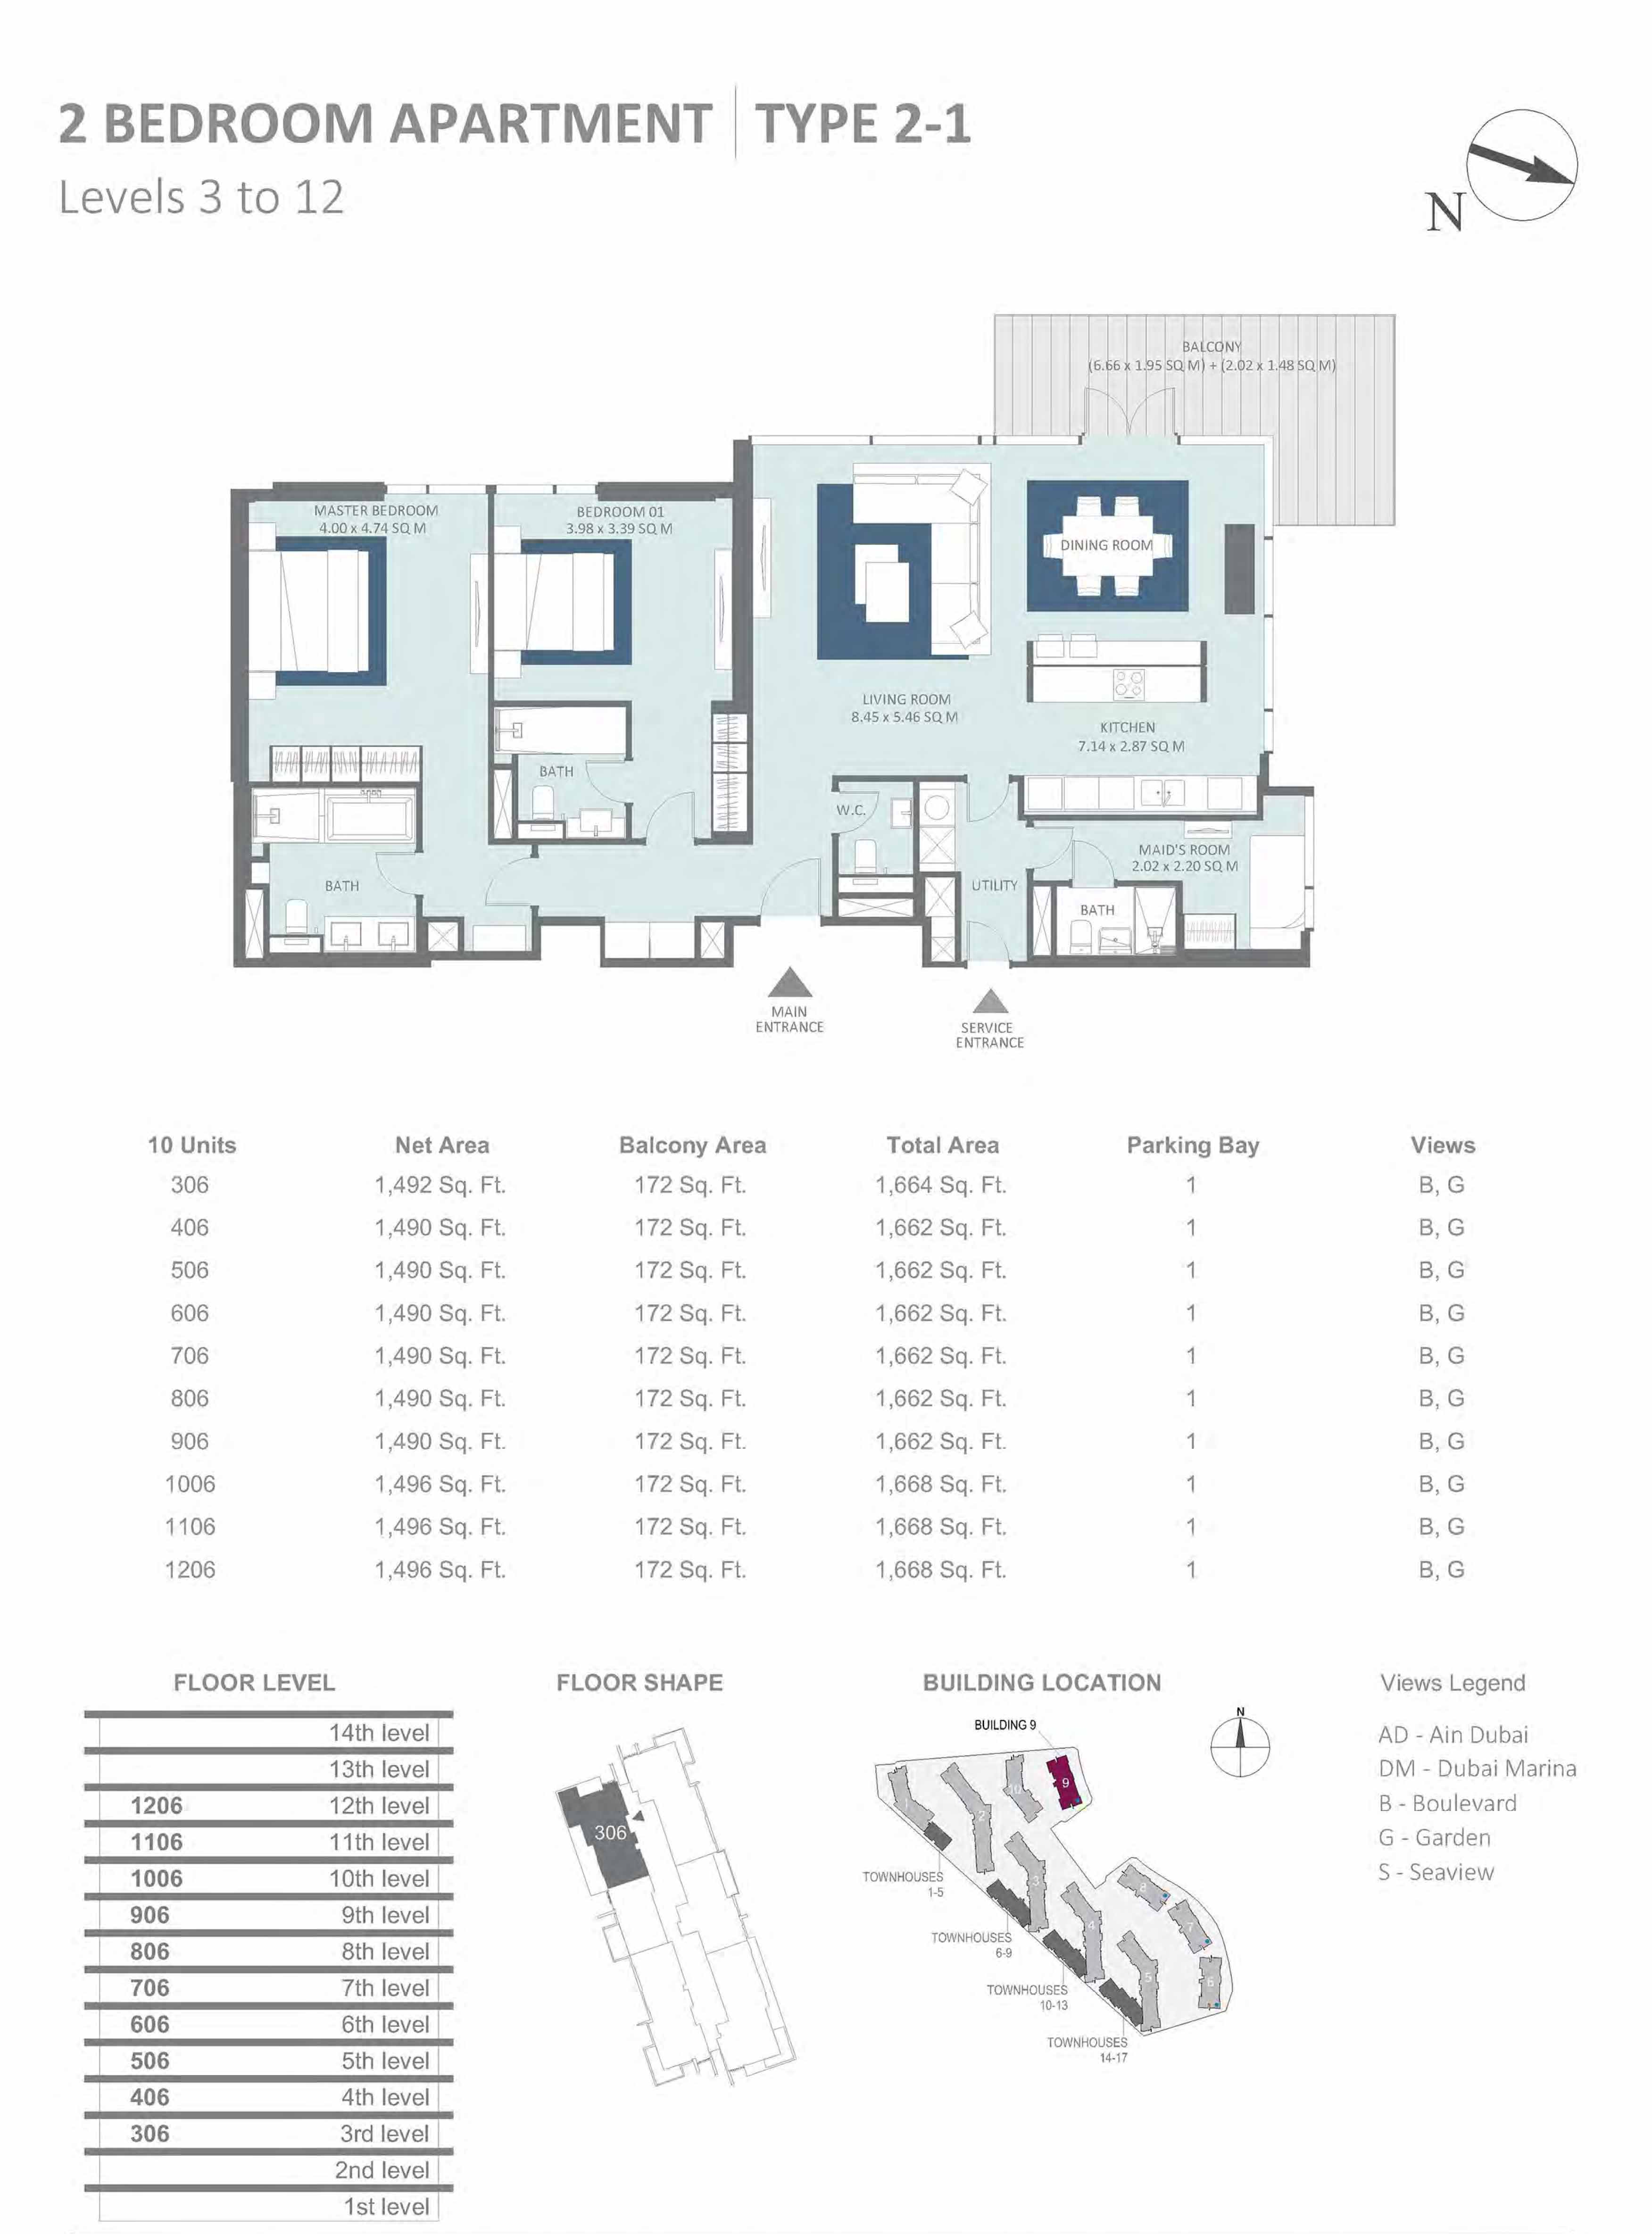 Building 9 - 2 Bedroom Type 2-1, Level 3 to 12 Size 1662 to 1668 sq.ft